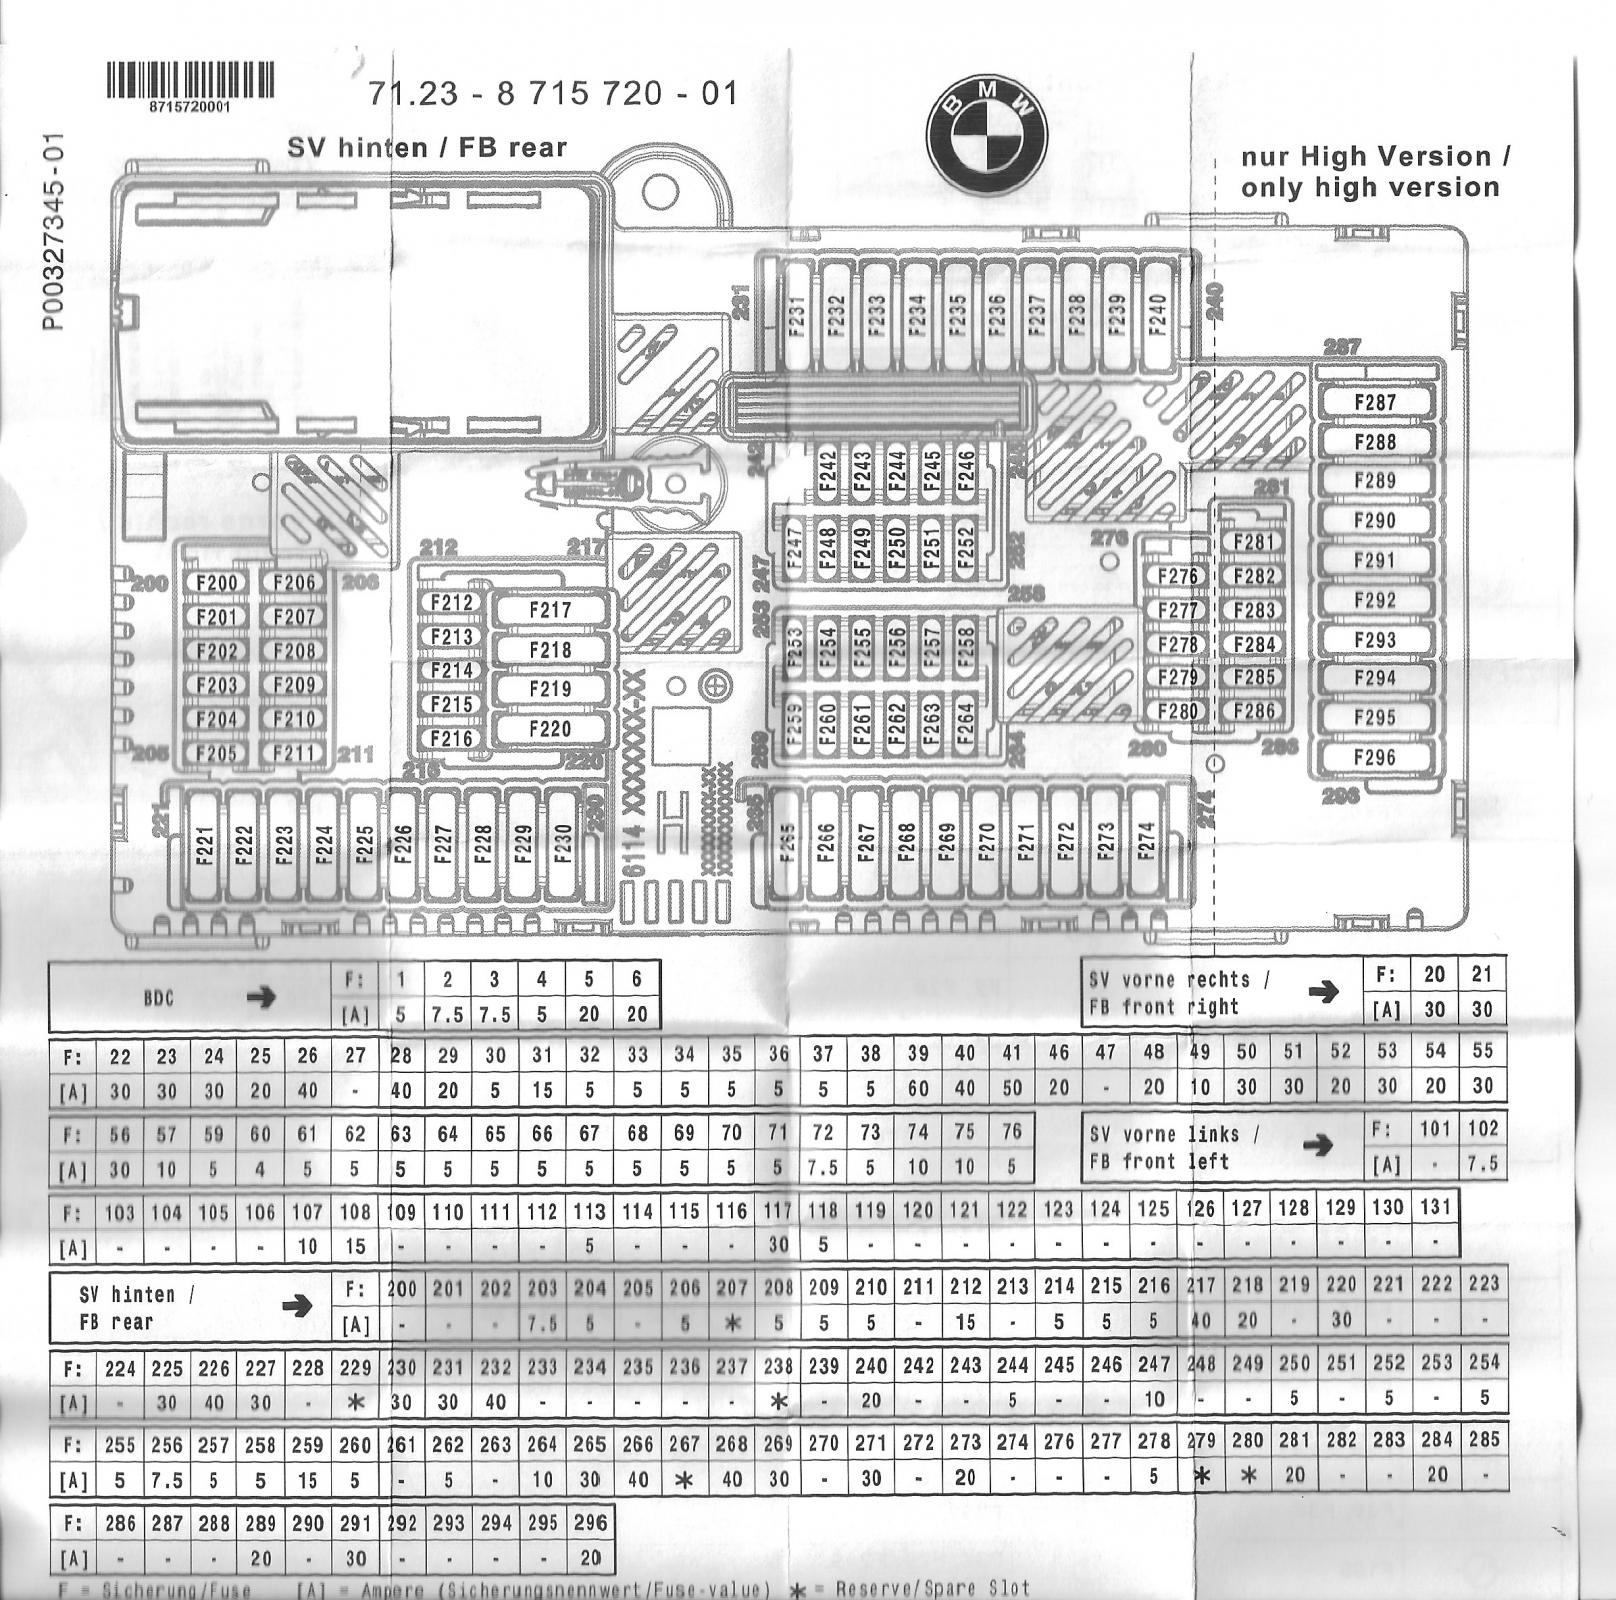 2008 bmw x3 fuse box location fuse assignments on the g20  g20 bmw 3 series forum  fuse assignments on the g20  g20 bmw